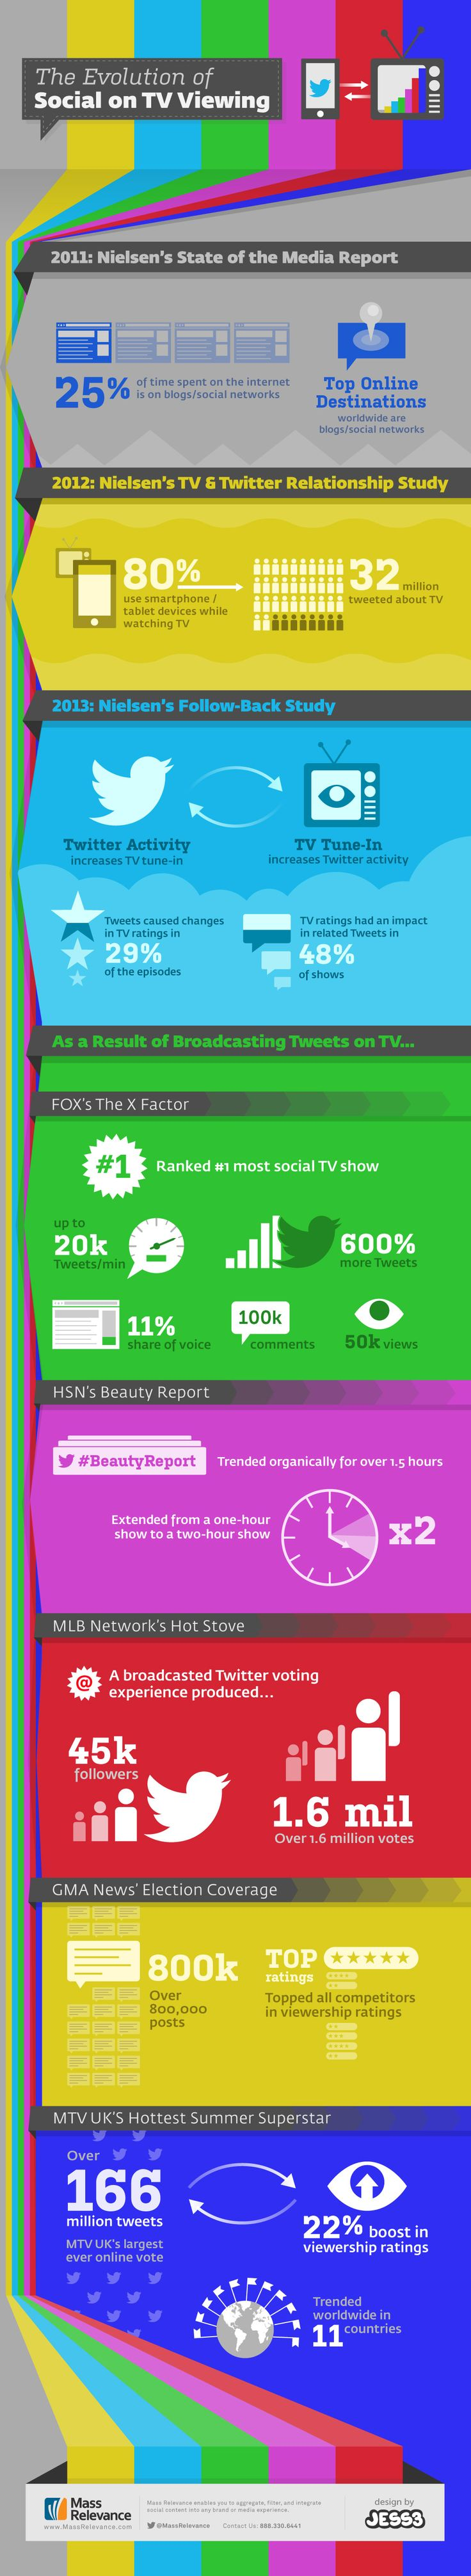 How Twitter has changed TV viewing: The Evolution Of Social TV [INFOGRAPHIC] - AllTwitter